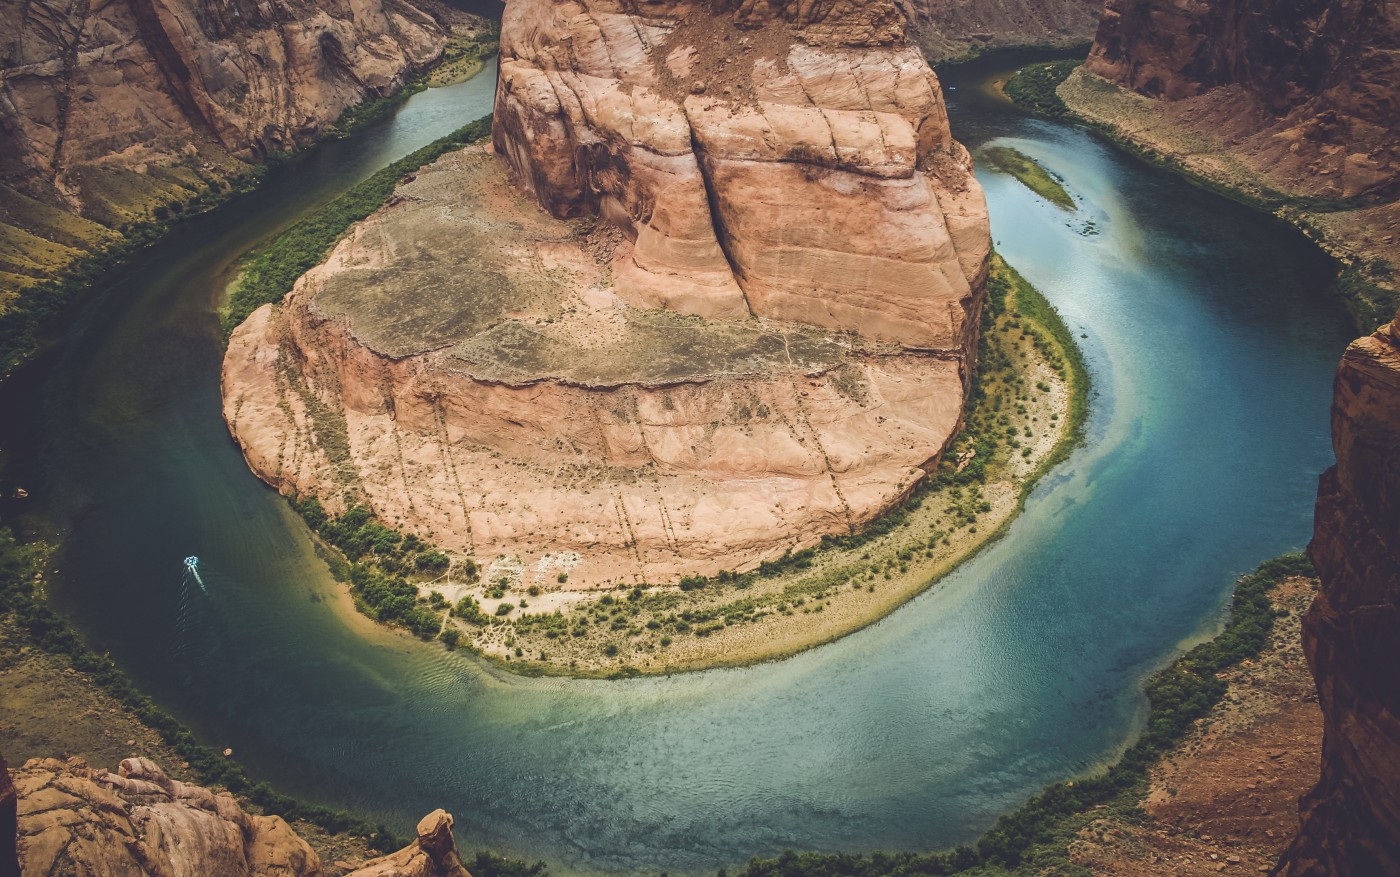 Horseshoe Bend, Arizona 2